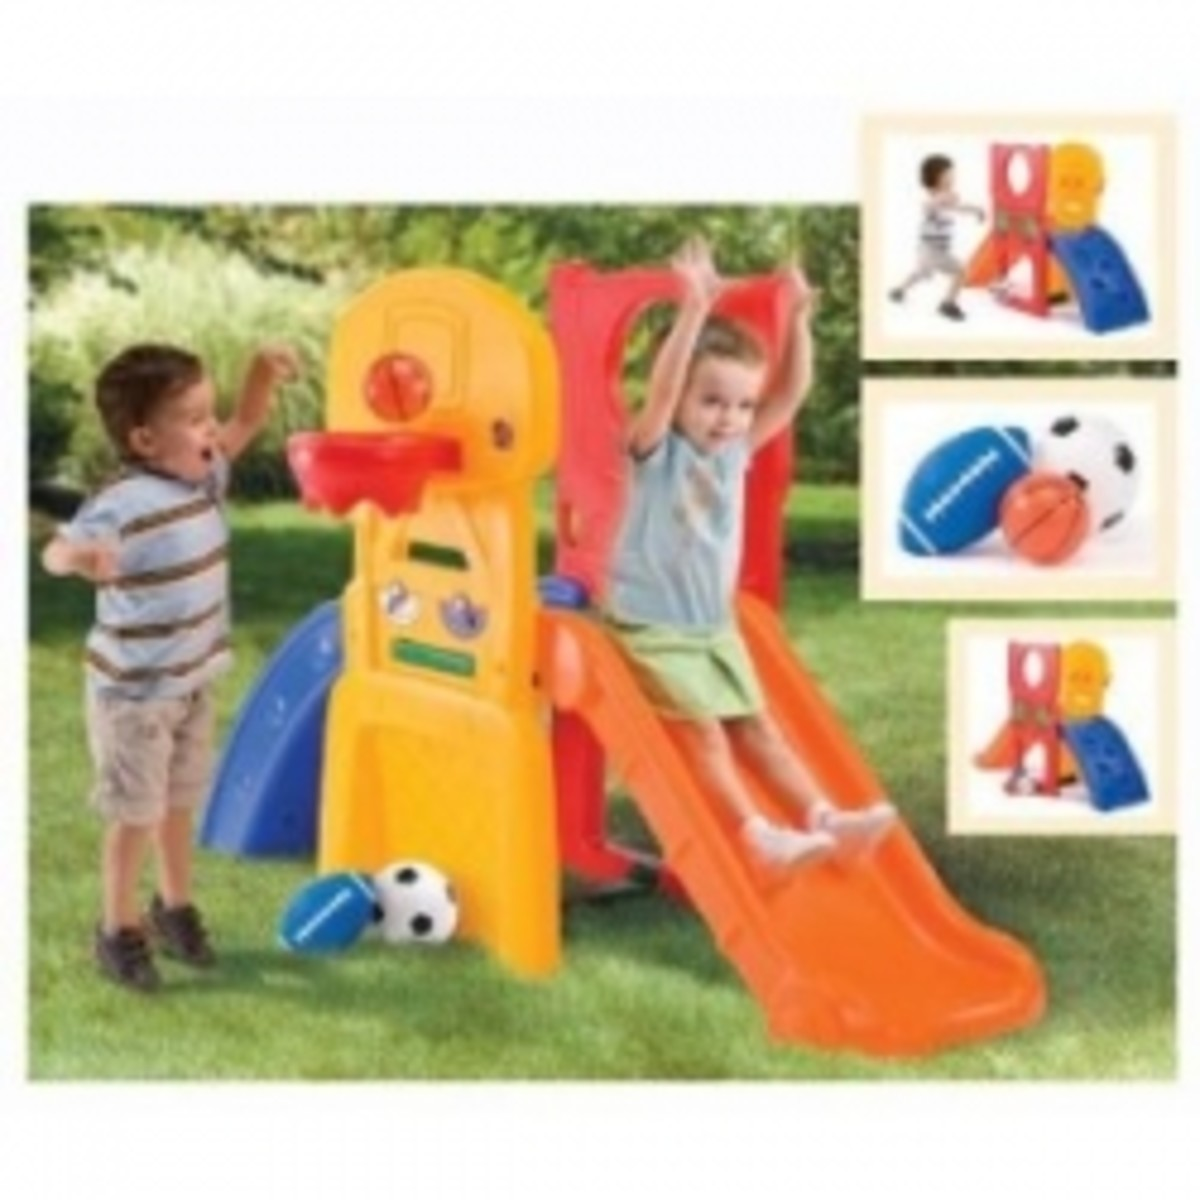 Learning Toys For Autistic Boys : The best toddler slide for active playtime hubpages